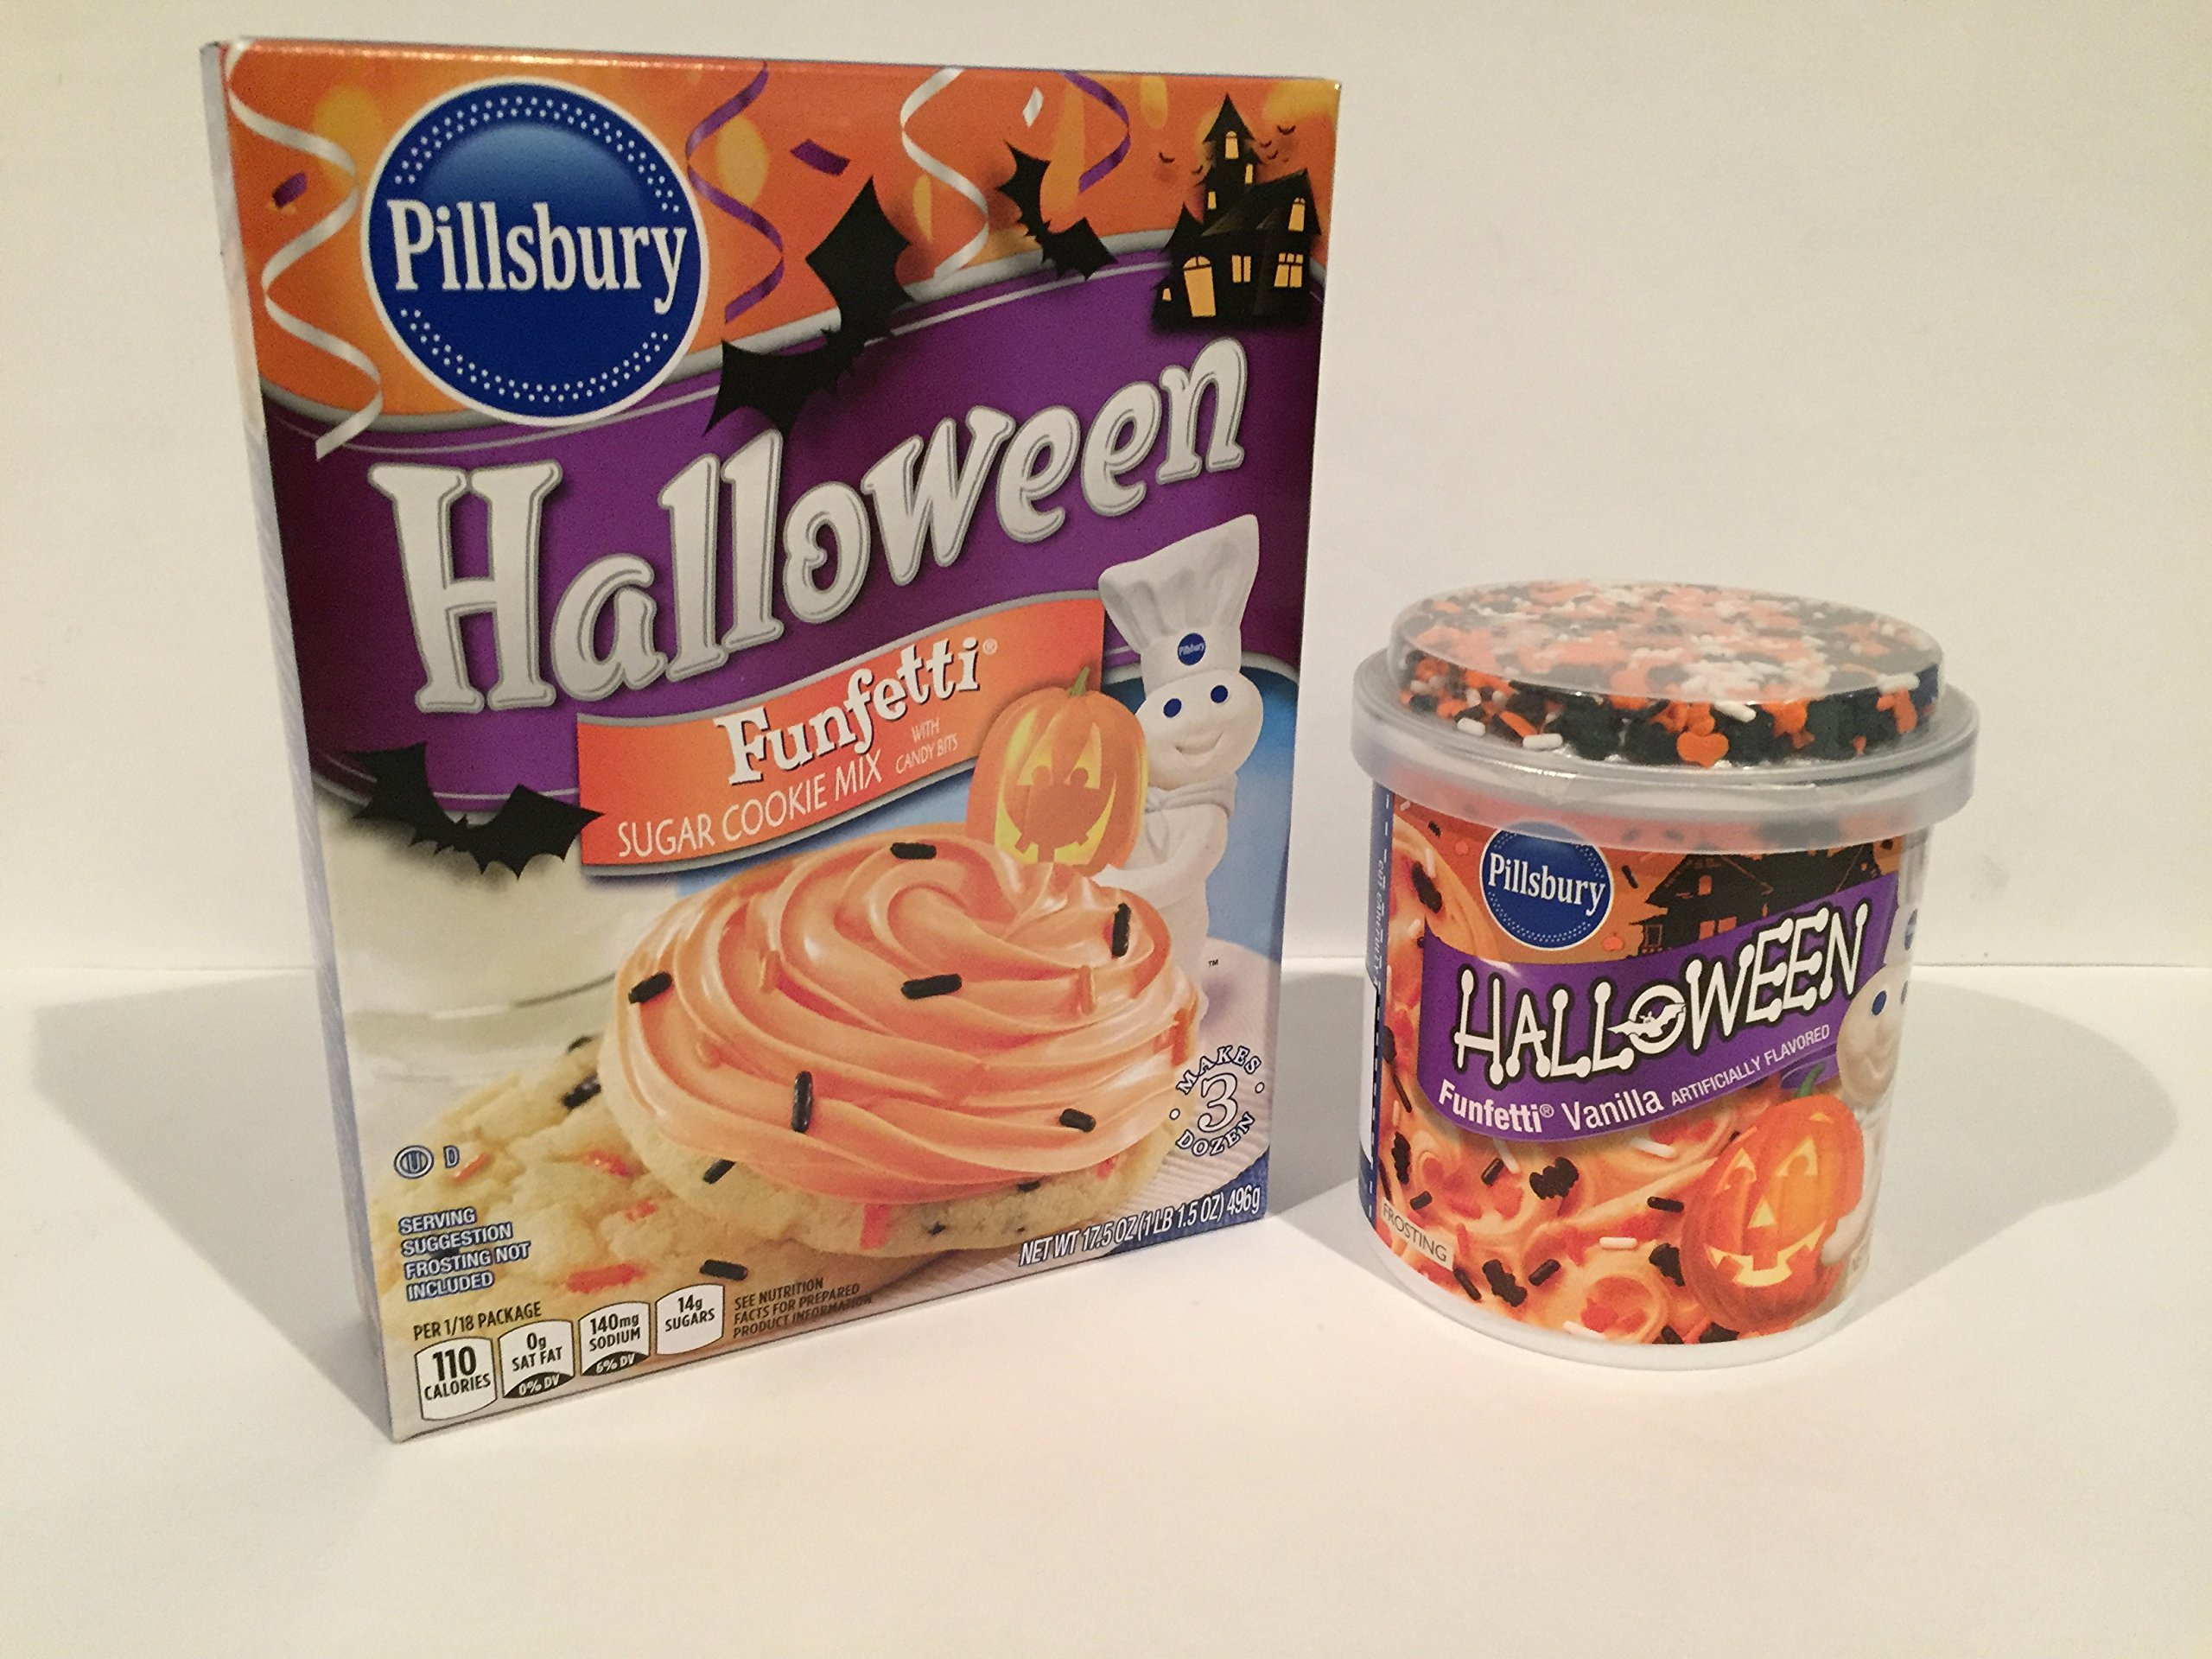 Pillsbury Halloween Funfetti Sugar Cookie Mix with Candy Bits, 17.5 oz AND Halloween Funfetti Frosting Vanilla w/Sprinkles